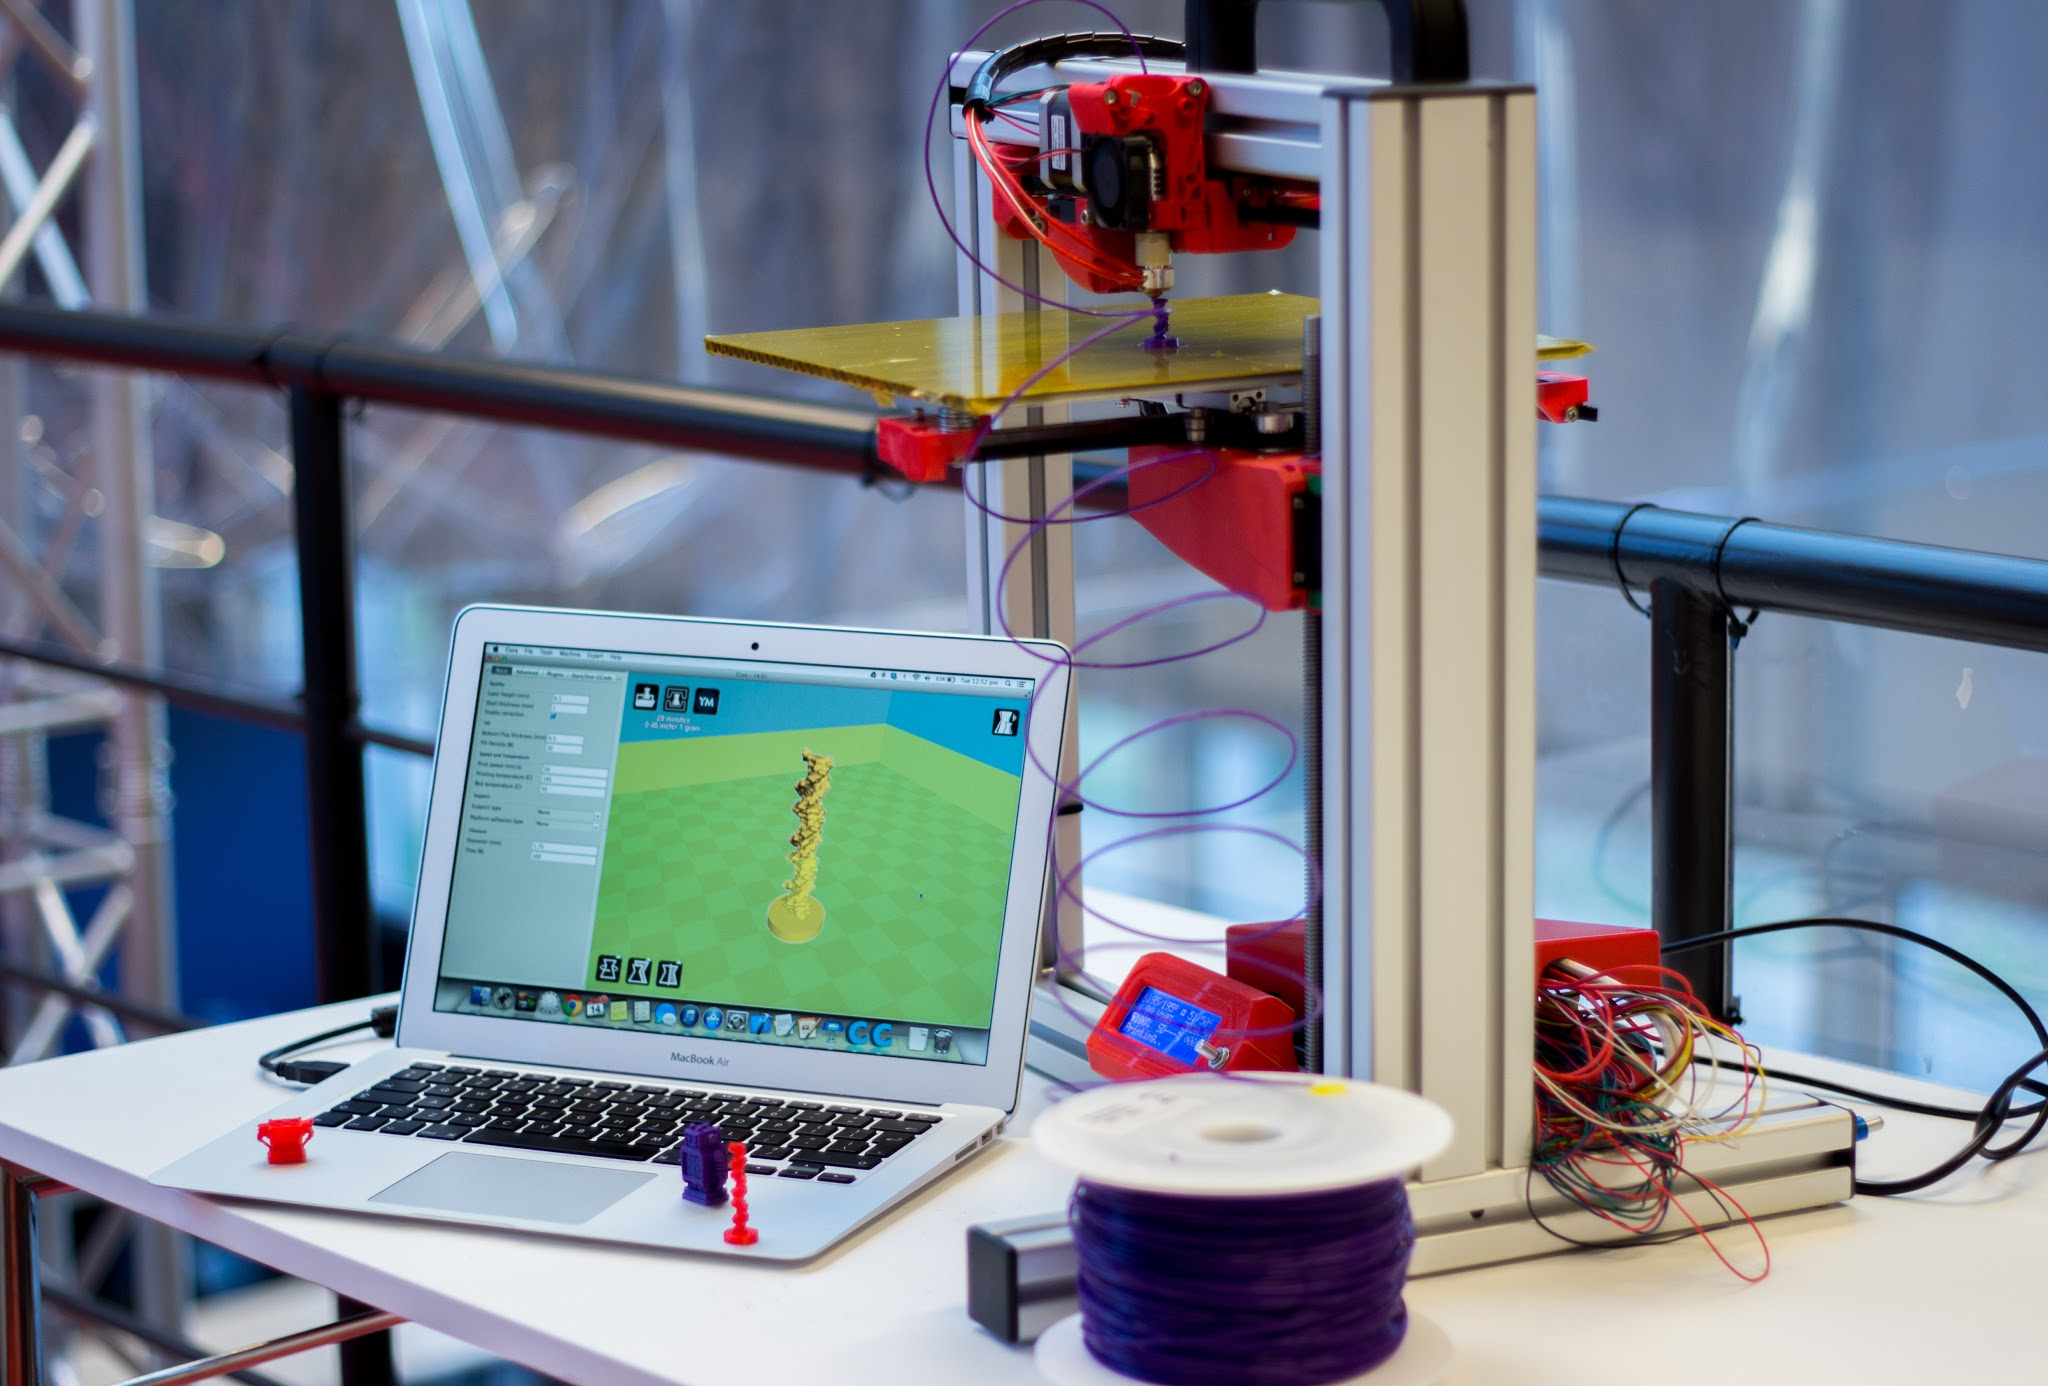 best 3d printer, how to use 3d printer, best 3d printer for miniatures